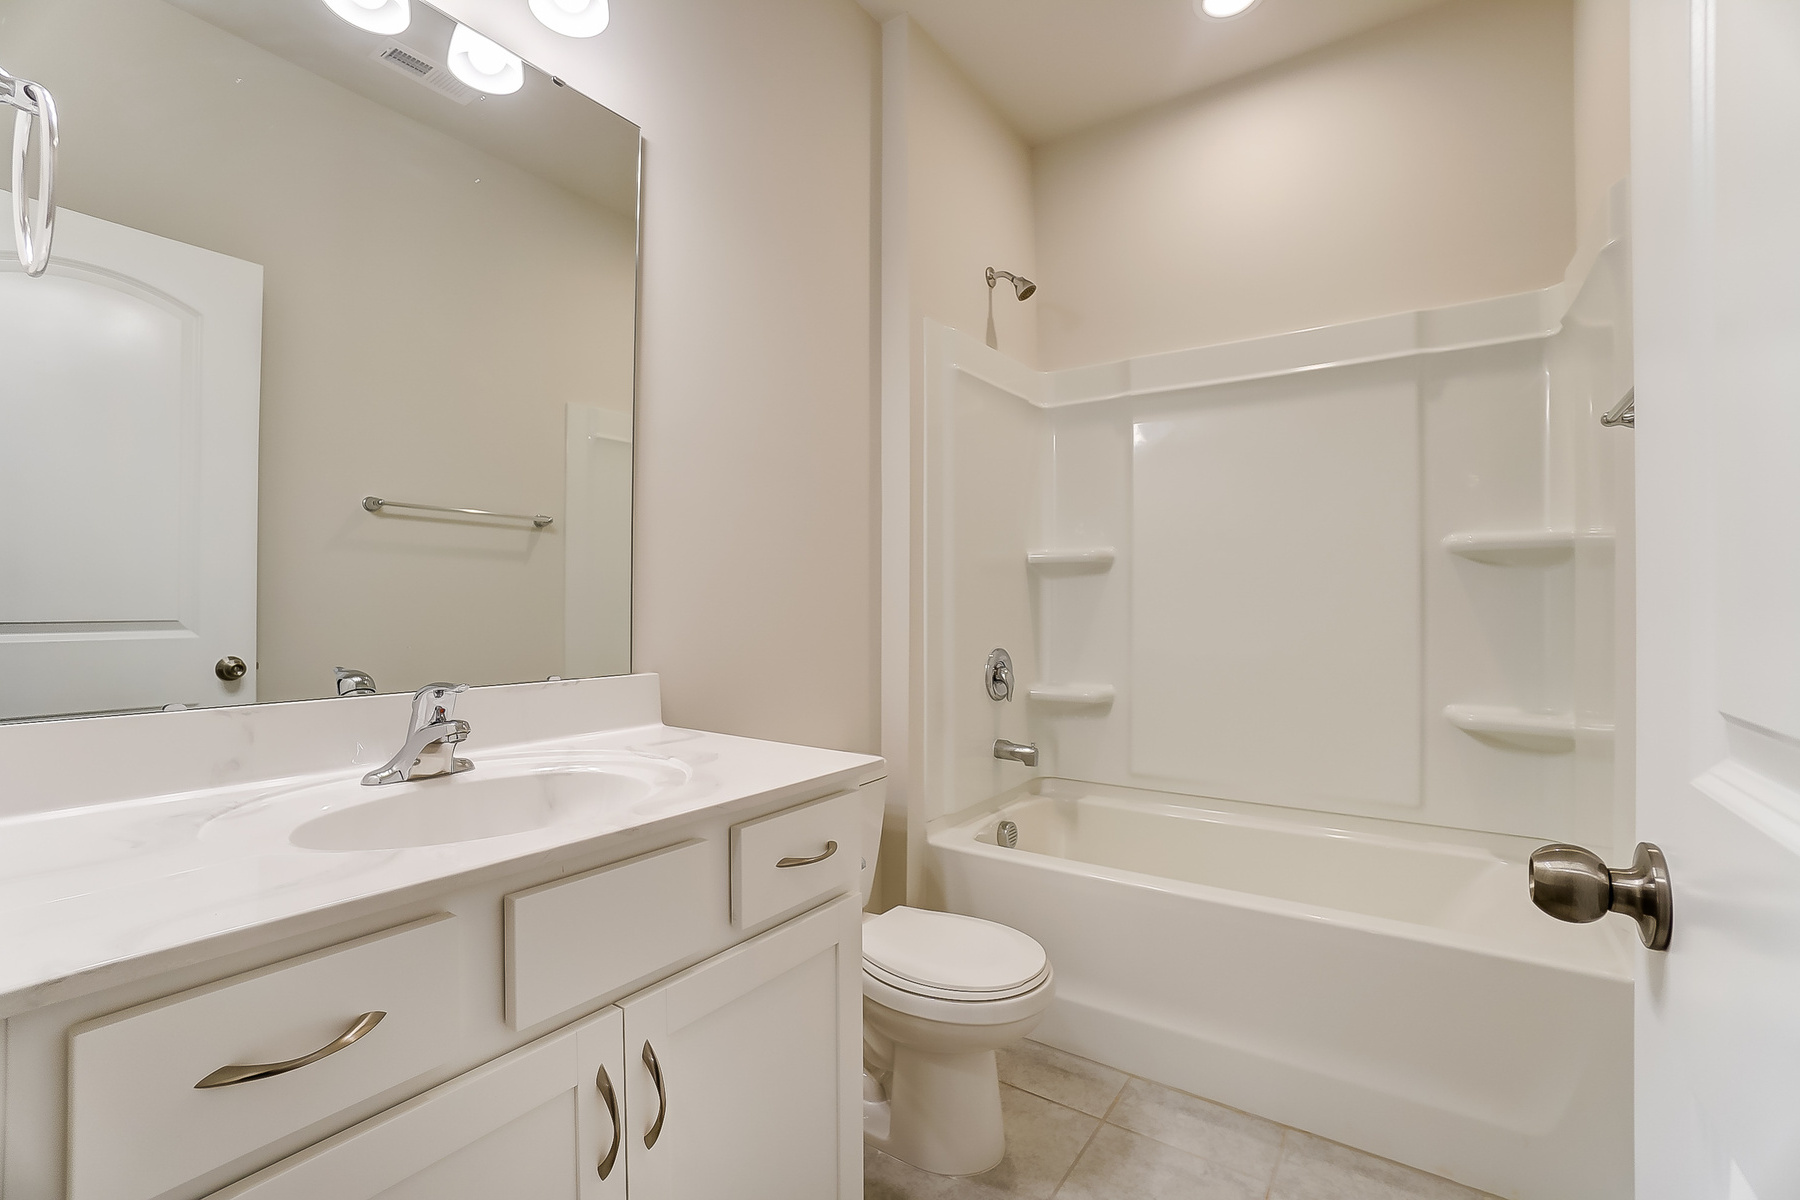 Gaines Plan Bath at Ridgewater in Charlotte North Carolina by Mattamy Homes